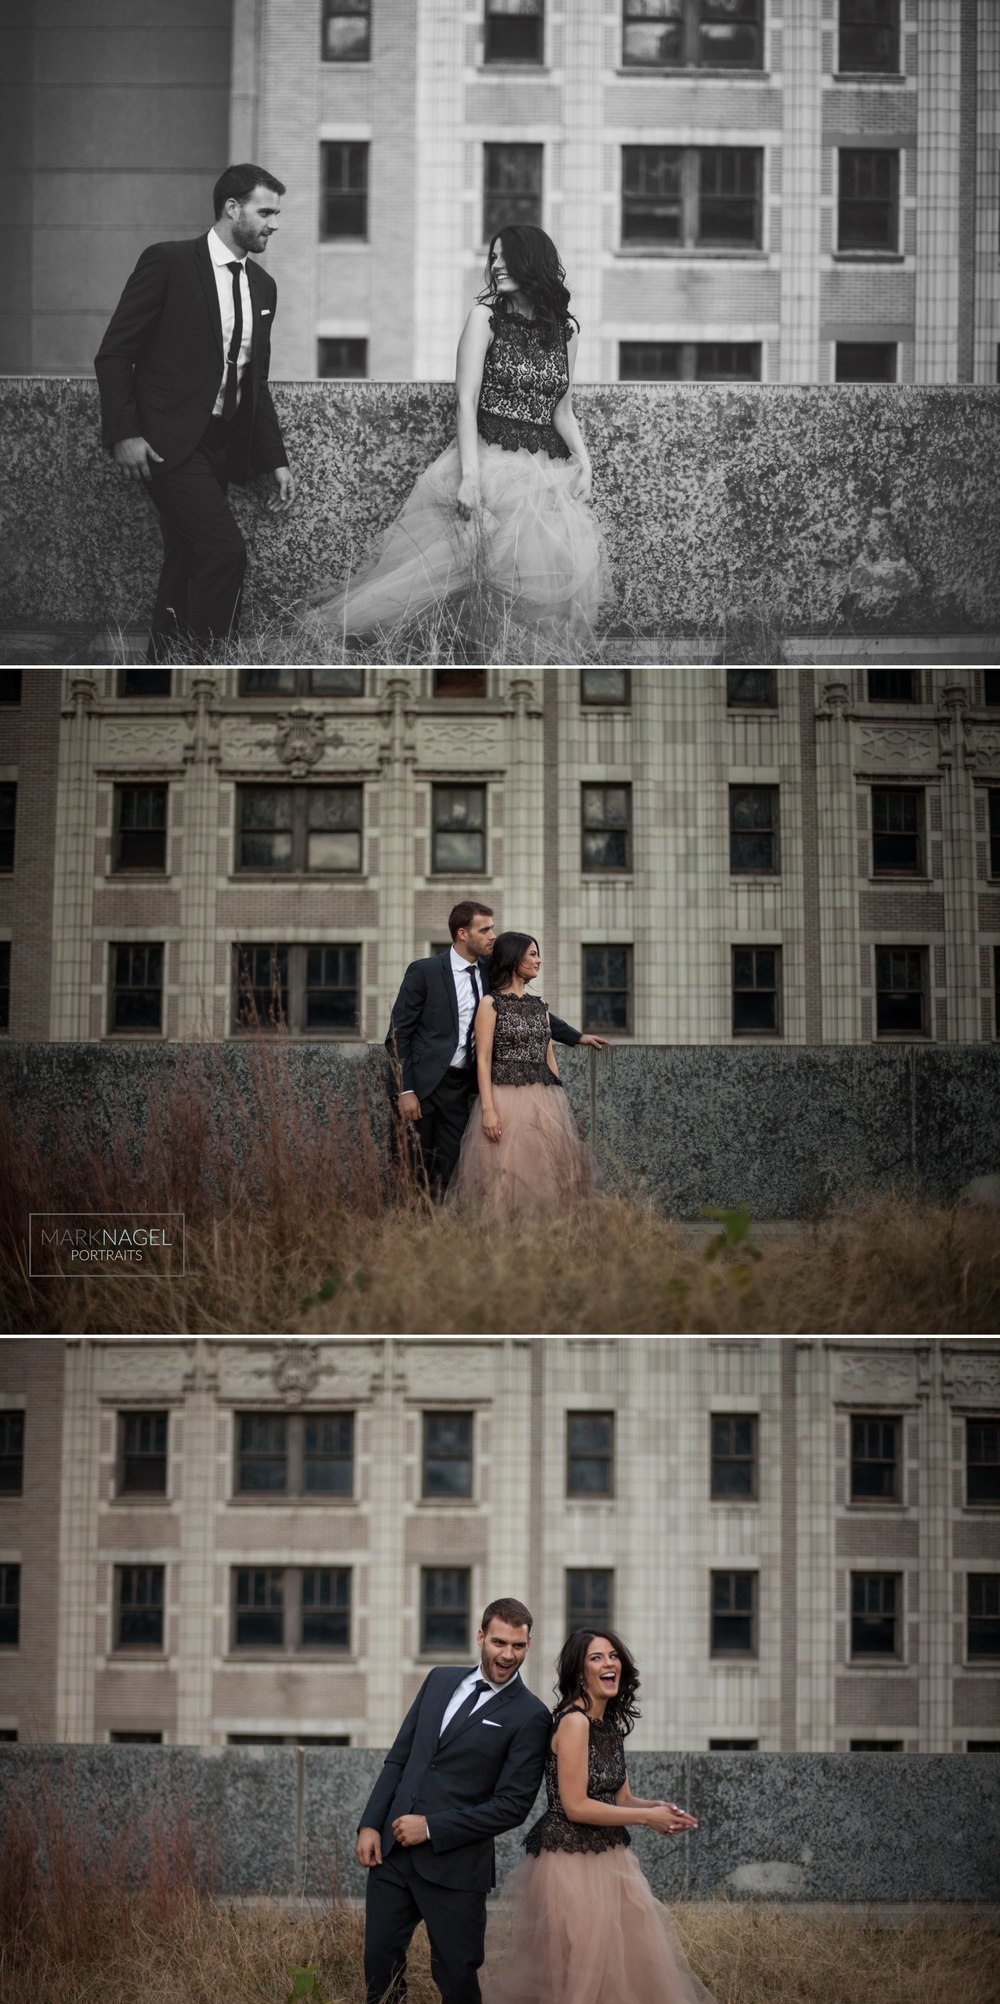 dressed up on the rooftop - engaged couple photo session in kansas city